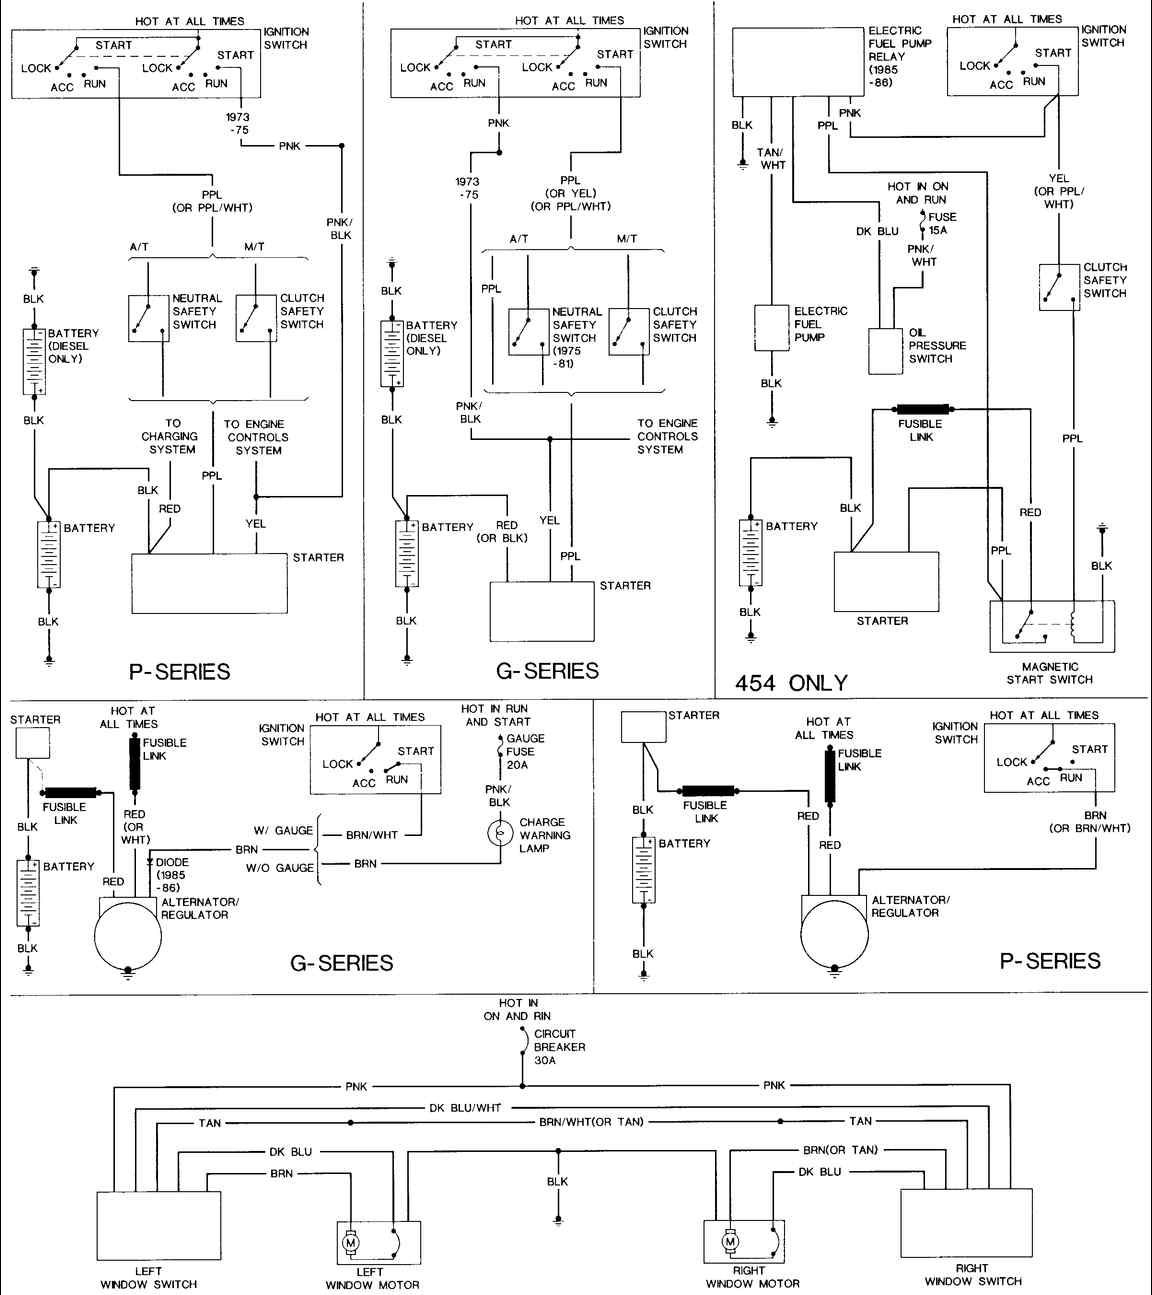 0c73623a181dc376dbb4777e2029d285 85 chevy truck wiring diagram 85 chevy van the steering column 1984 chevy c10 wiring diagram at soozxer.org